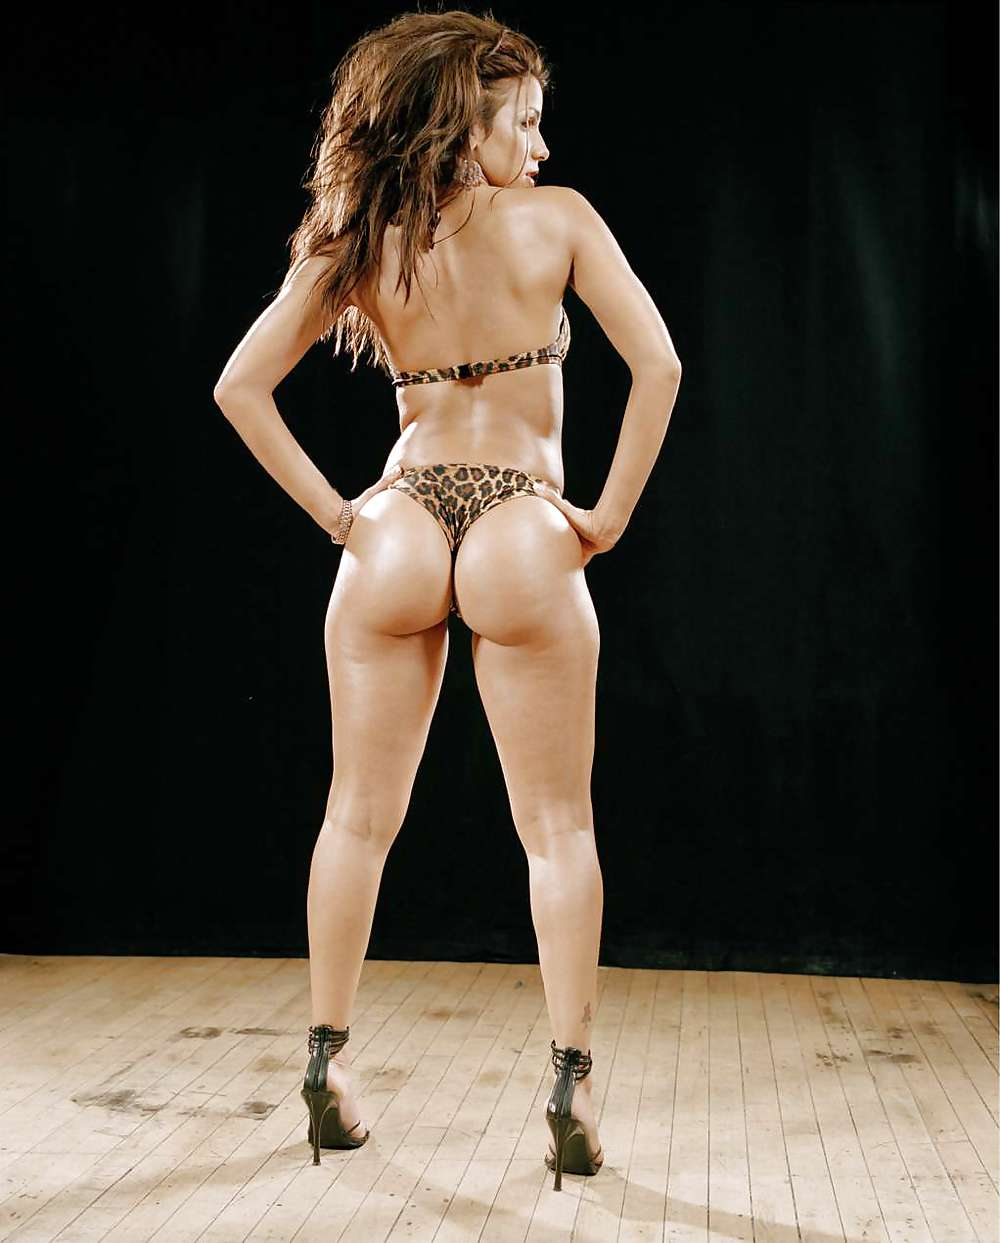 Pictures of vida guerra naked, sexy curvy blonde babe porn